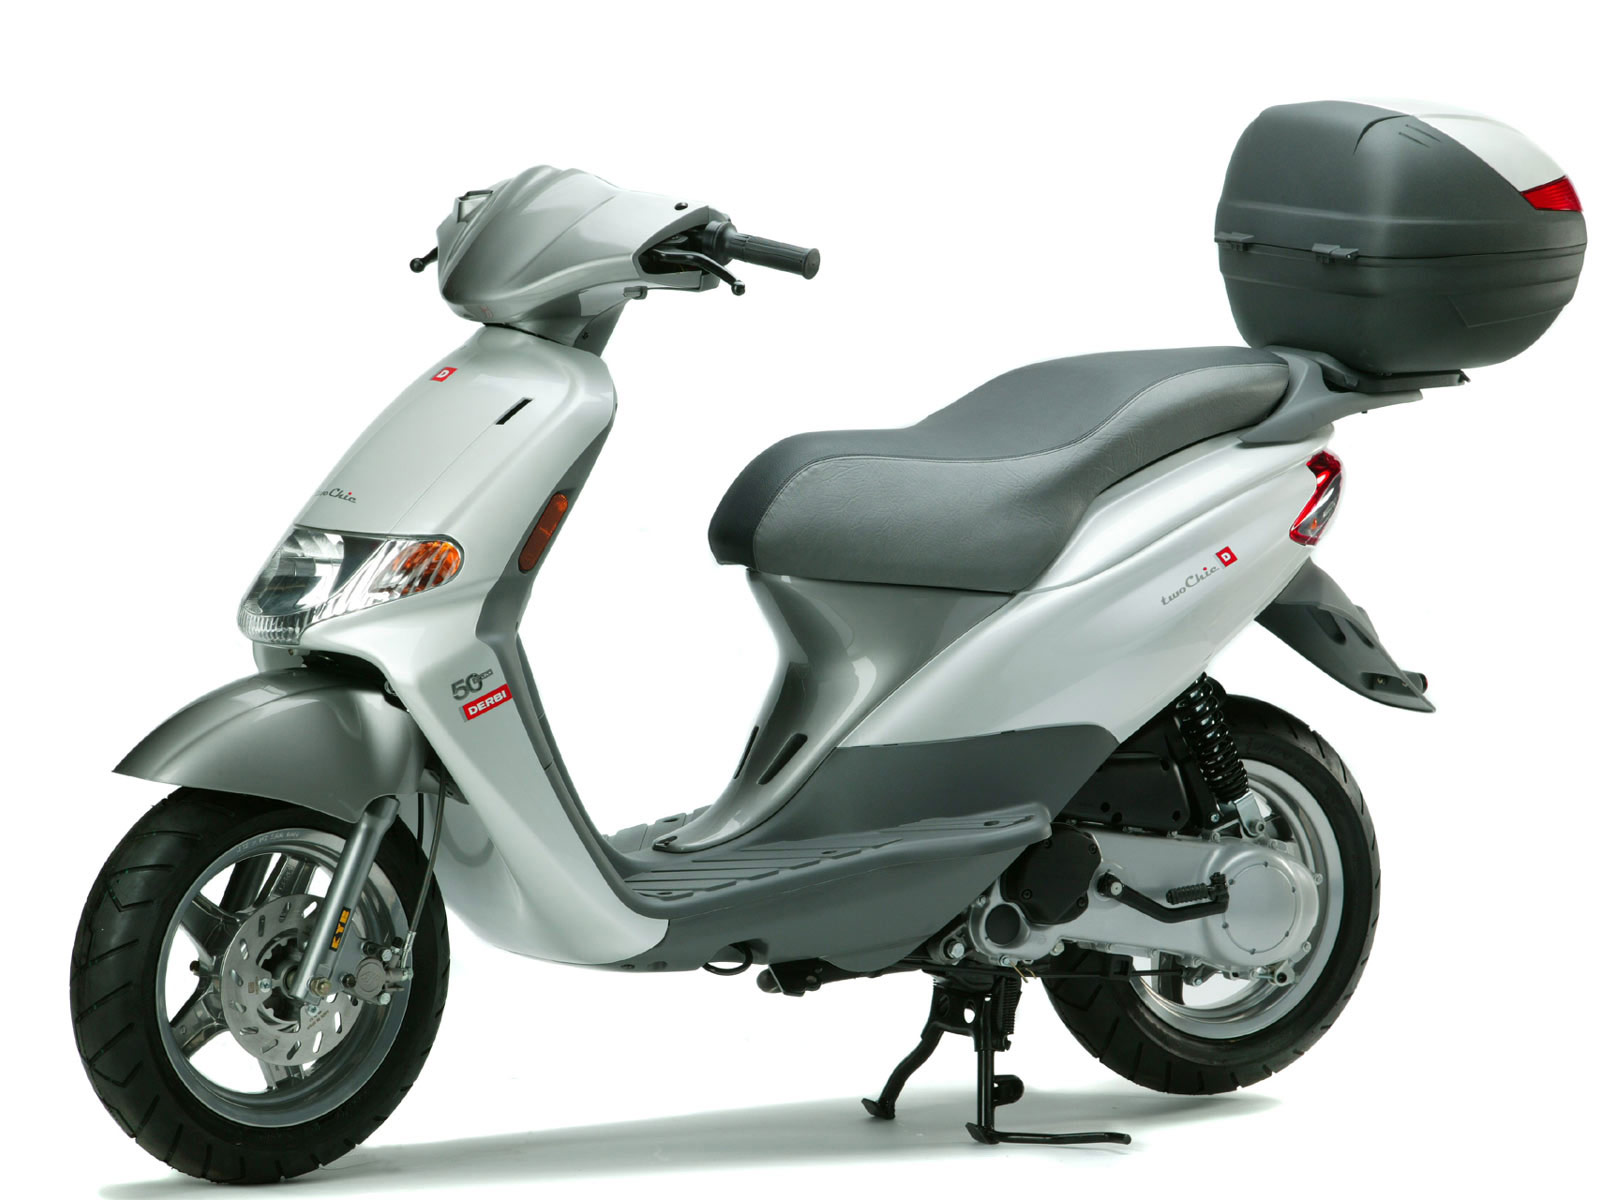 Derbi Atlantis City 50 4T 2006 #4